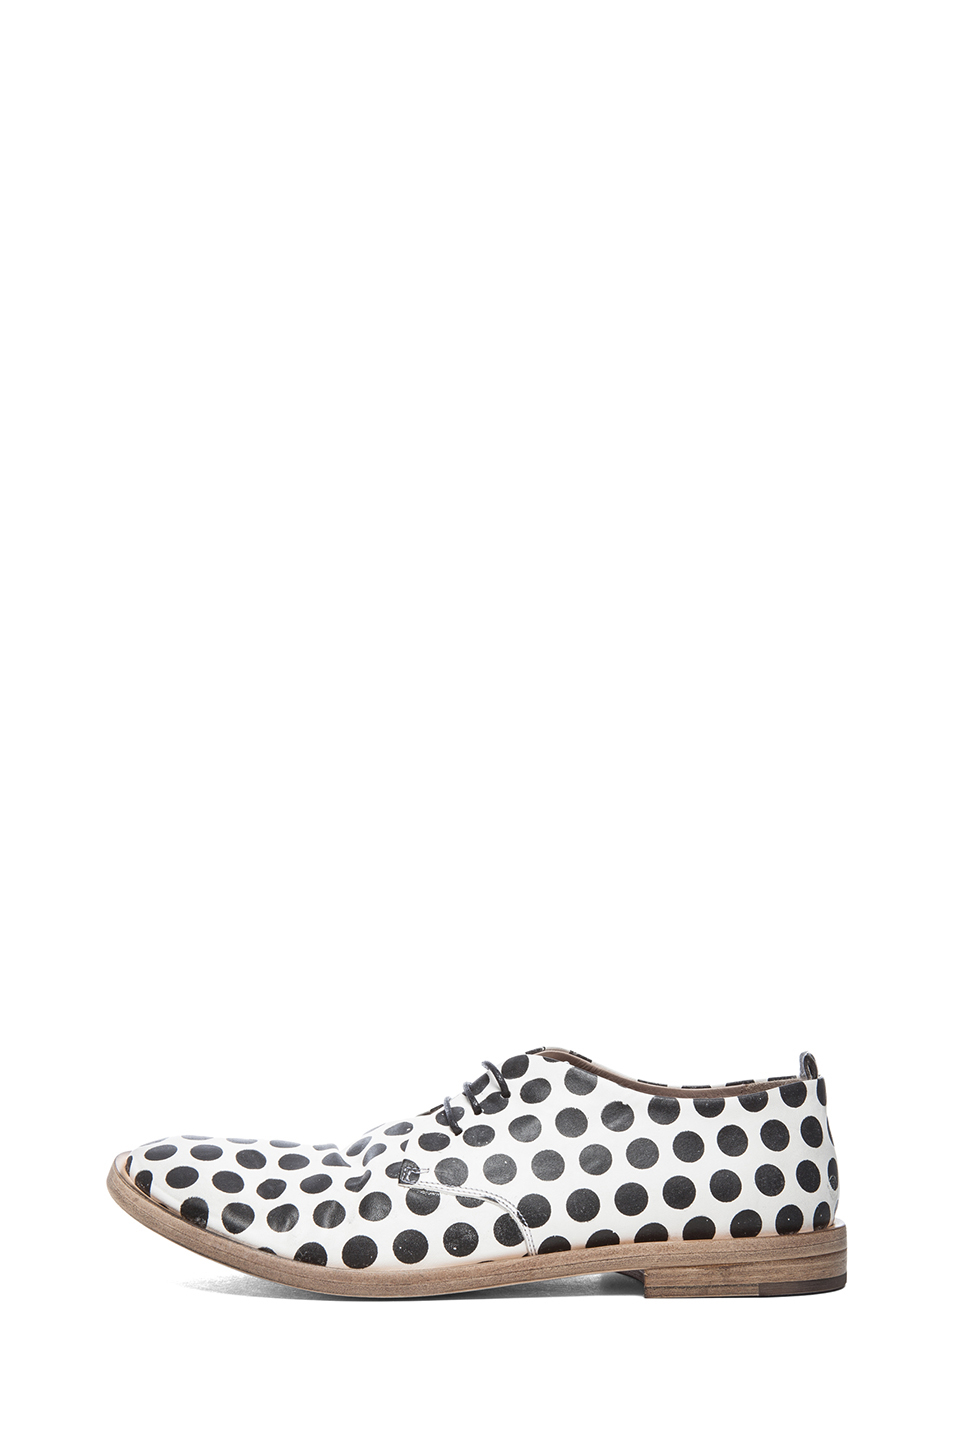 Marsèll polka dot shoes amazing price sale online h4r4n90ZPm